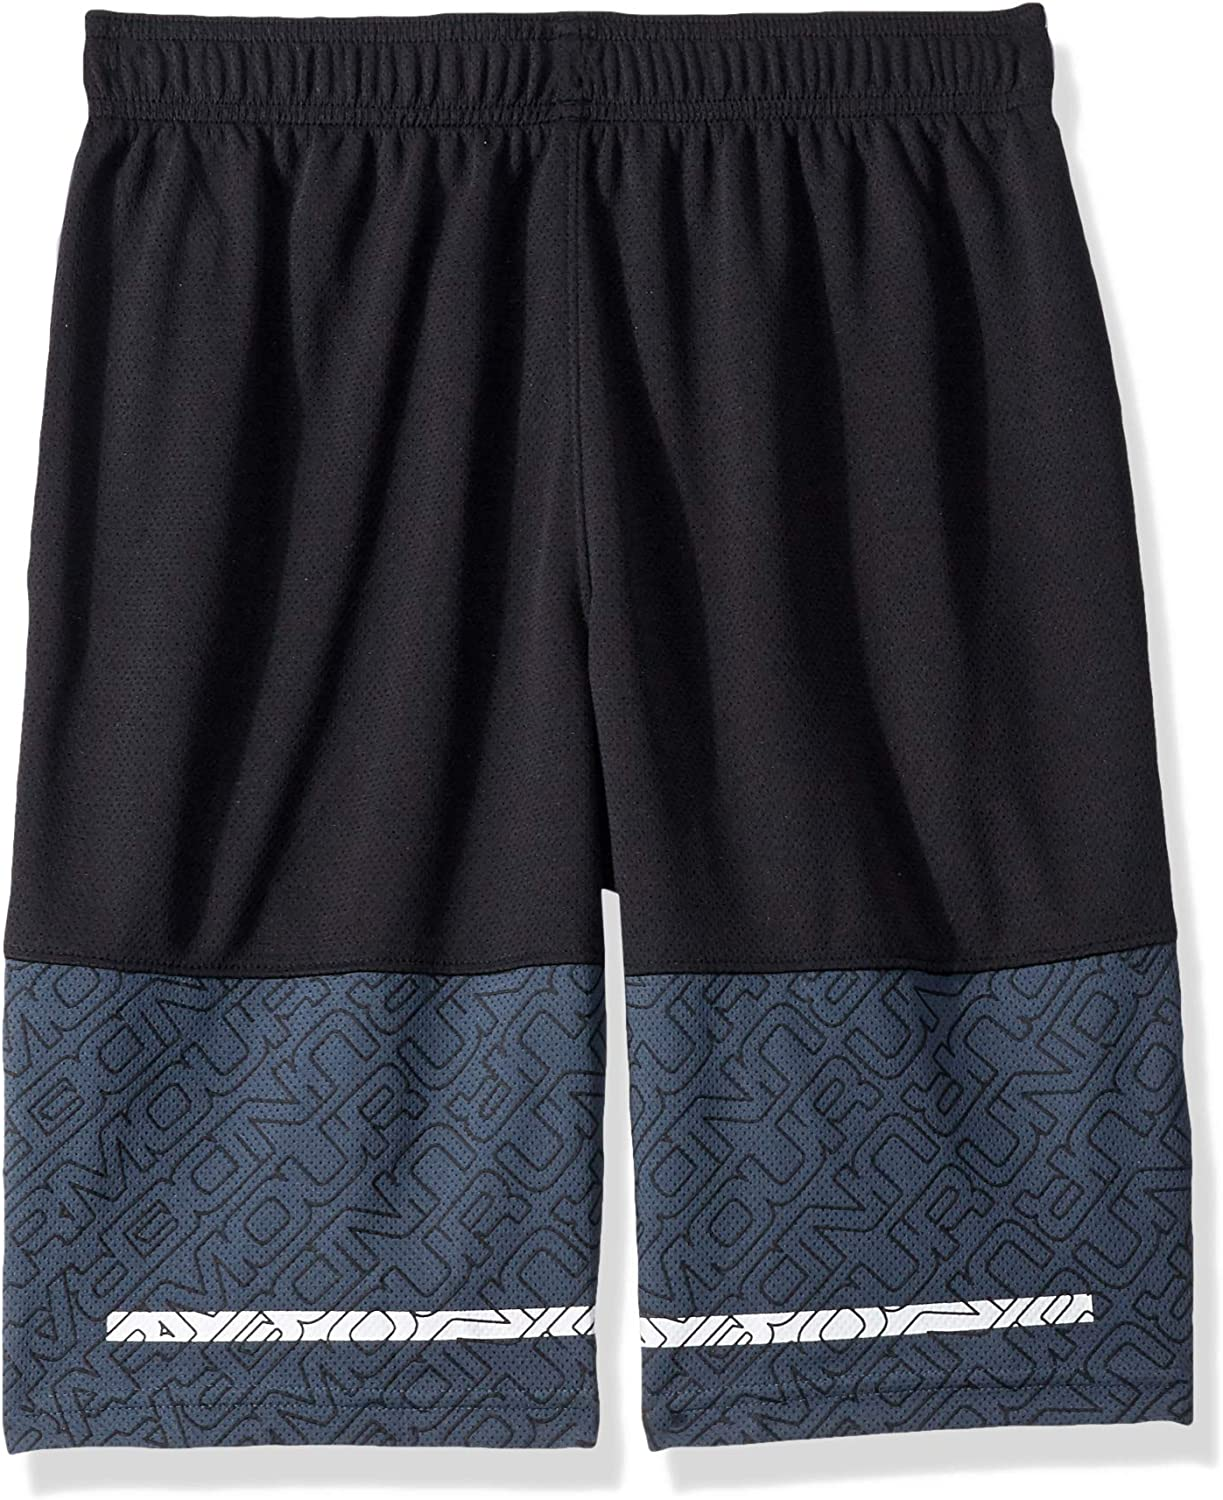 Under Armour Baseline Short 001 //Wire Youth X-Large Black